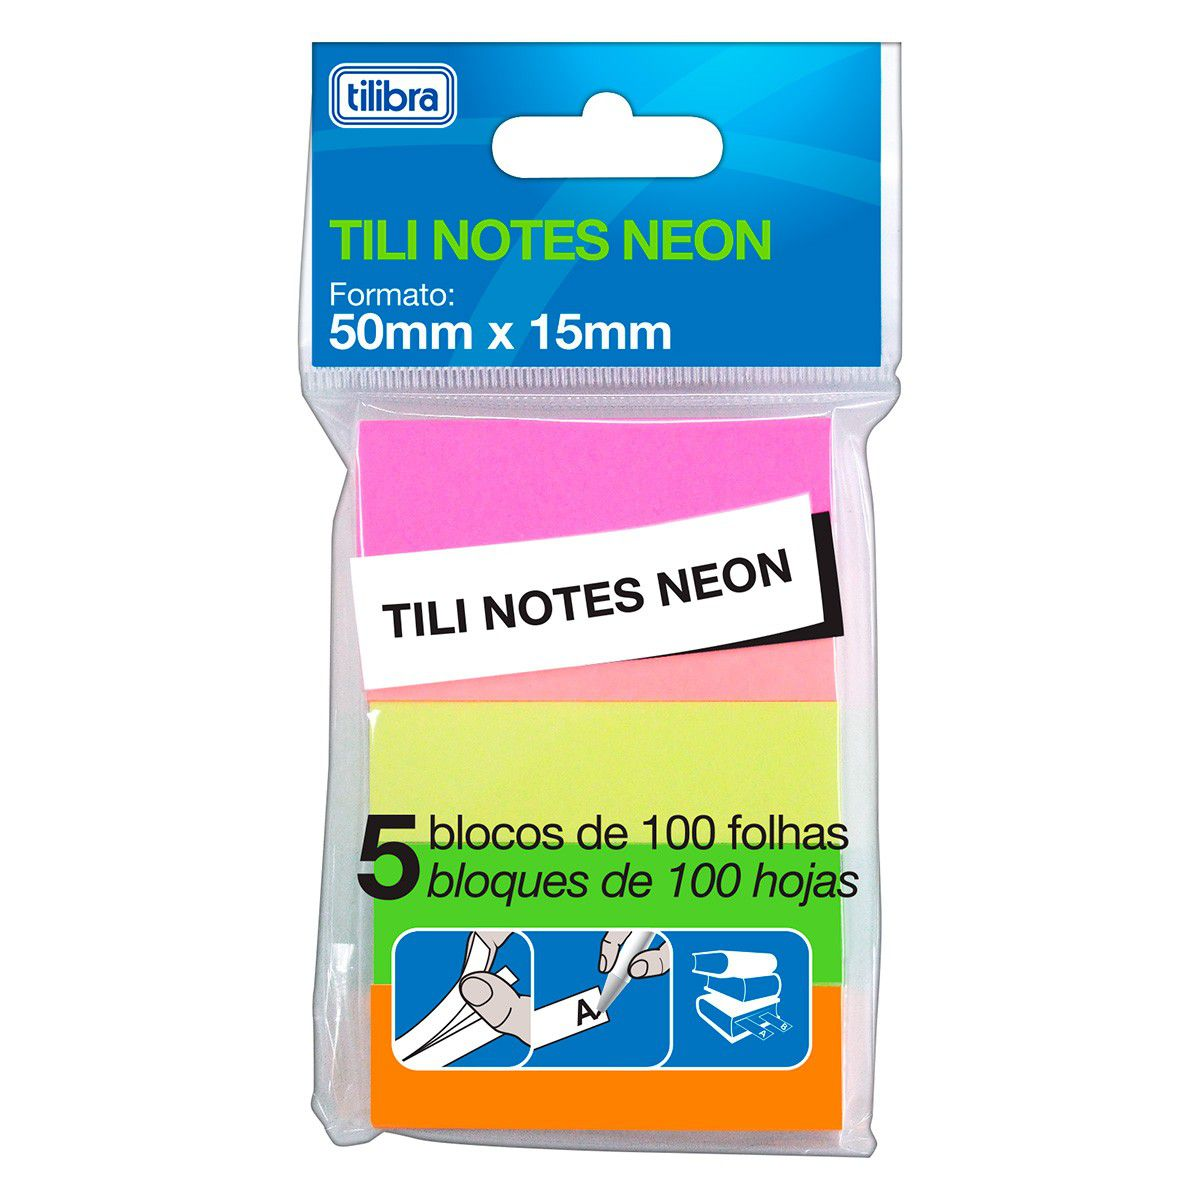 Tili Notes Neon 50mm x 15mm